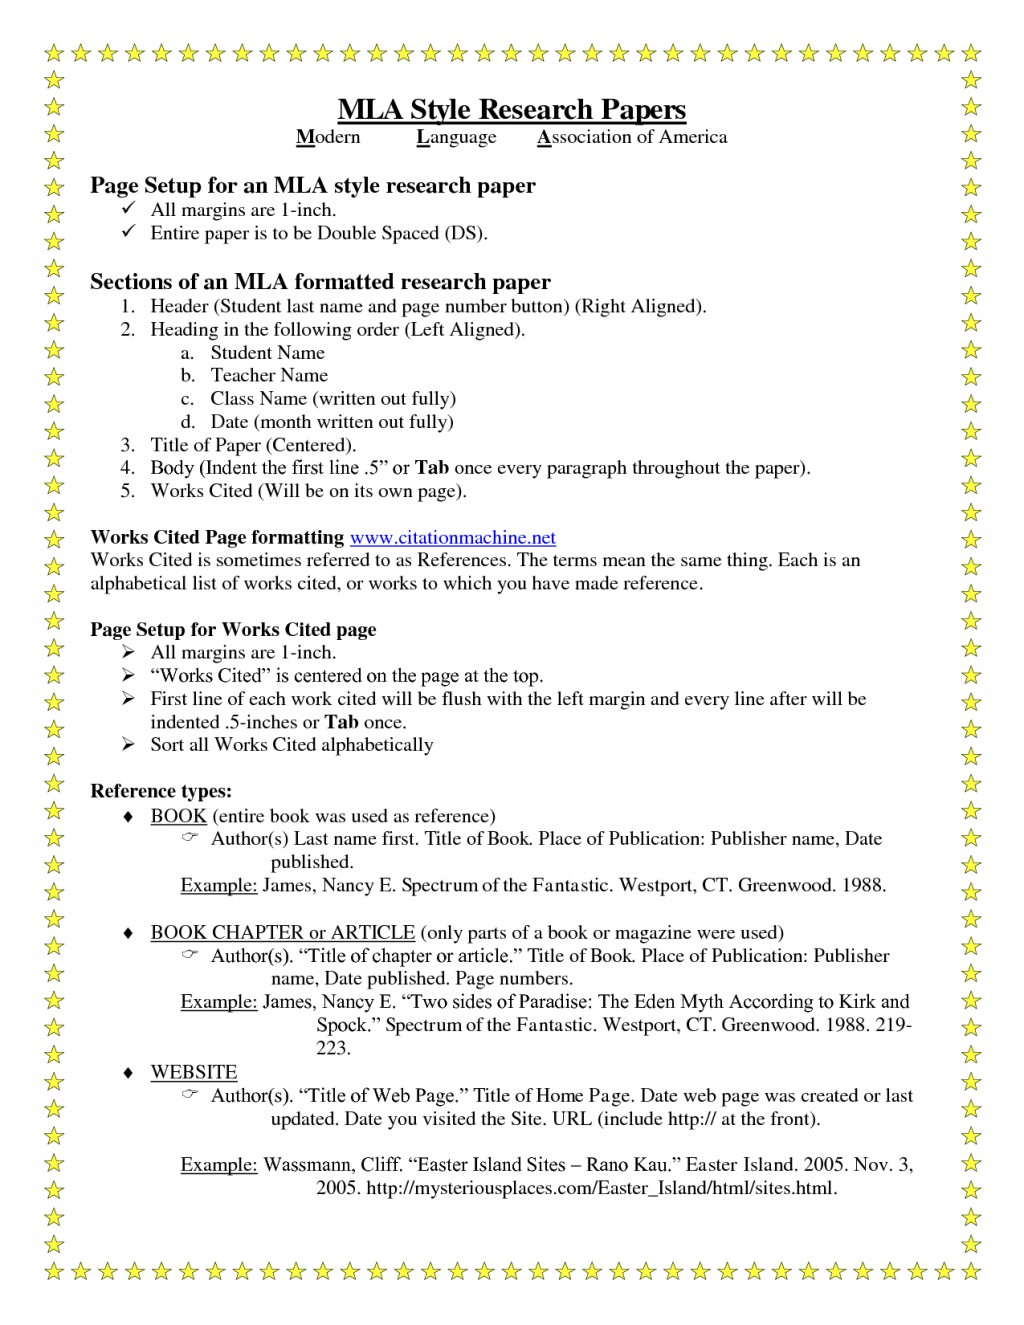 006 Order Of Research Paper Headings In Breathtaking Reviews Making Examples A Large